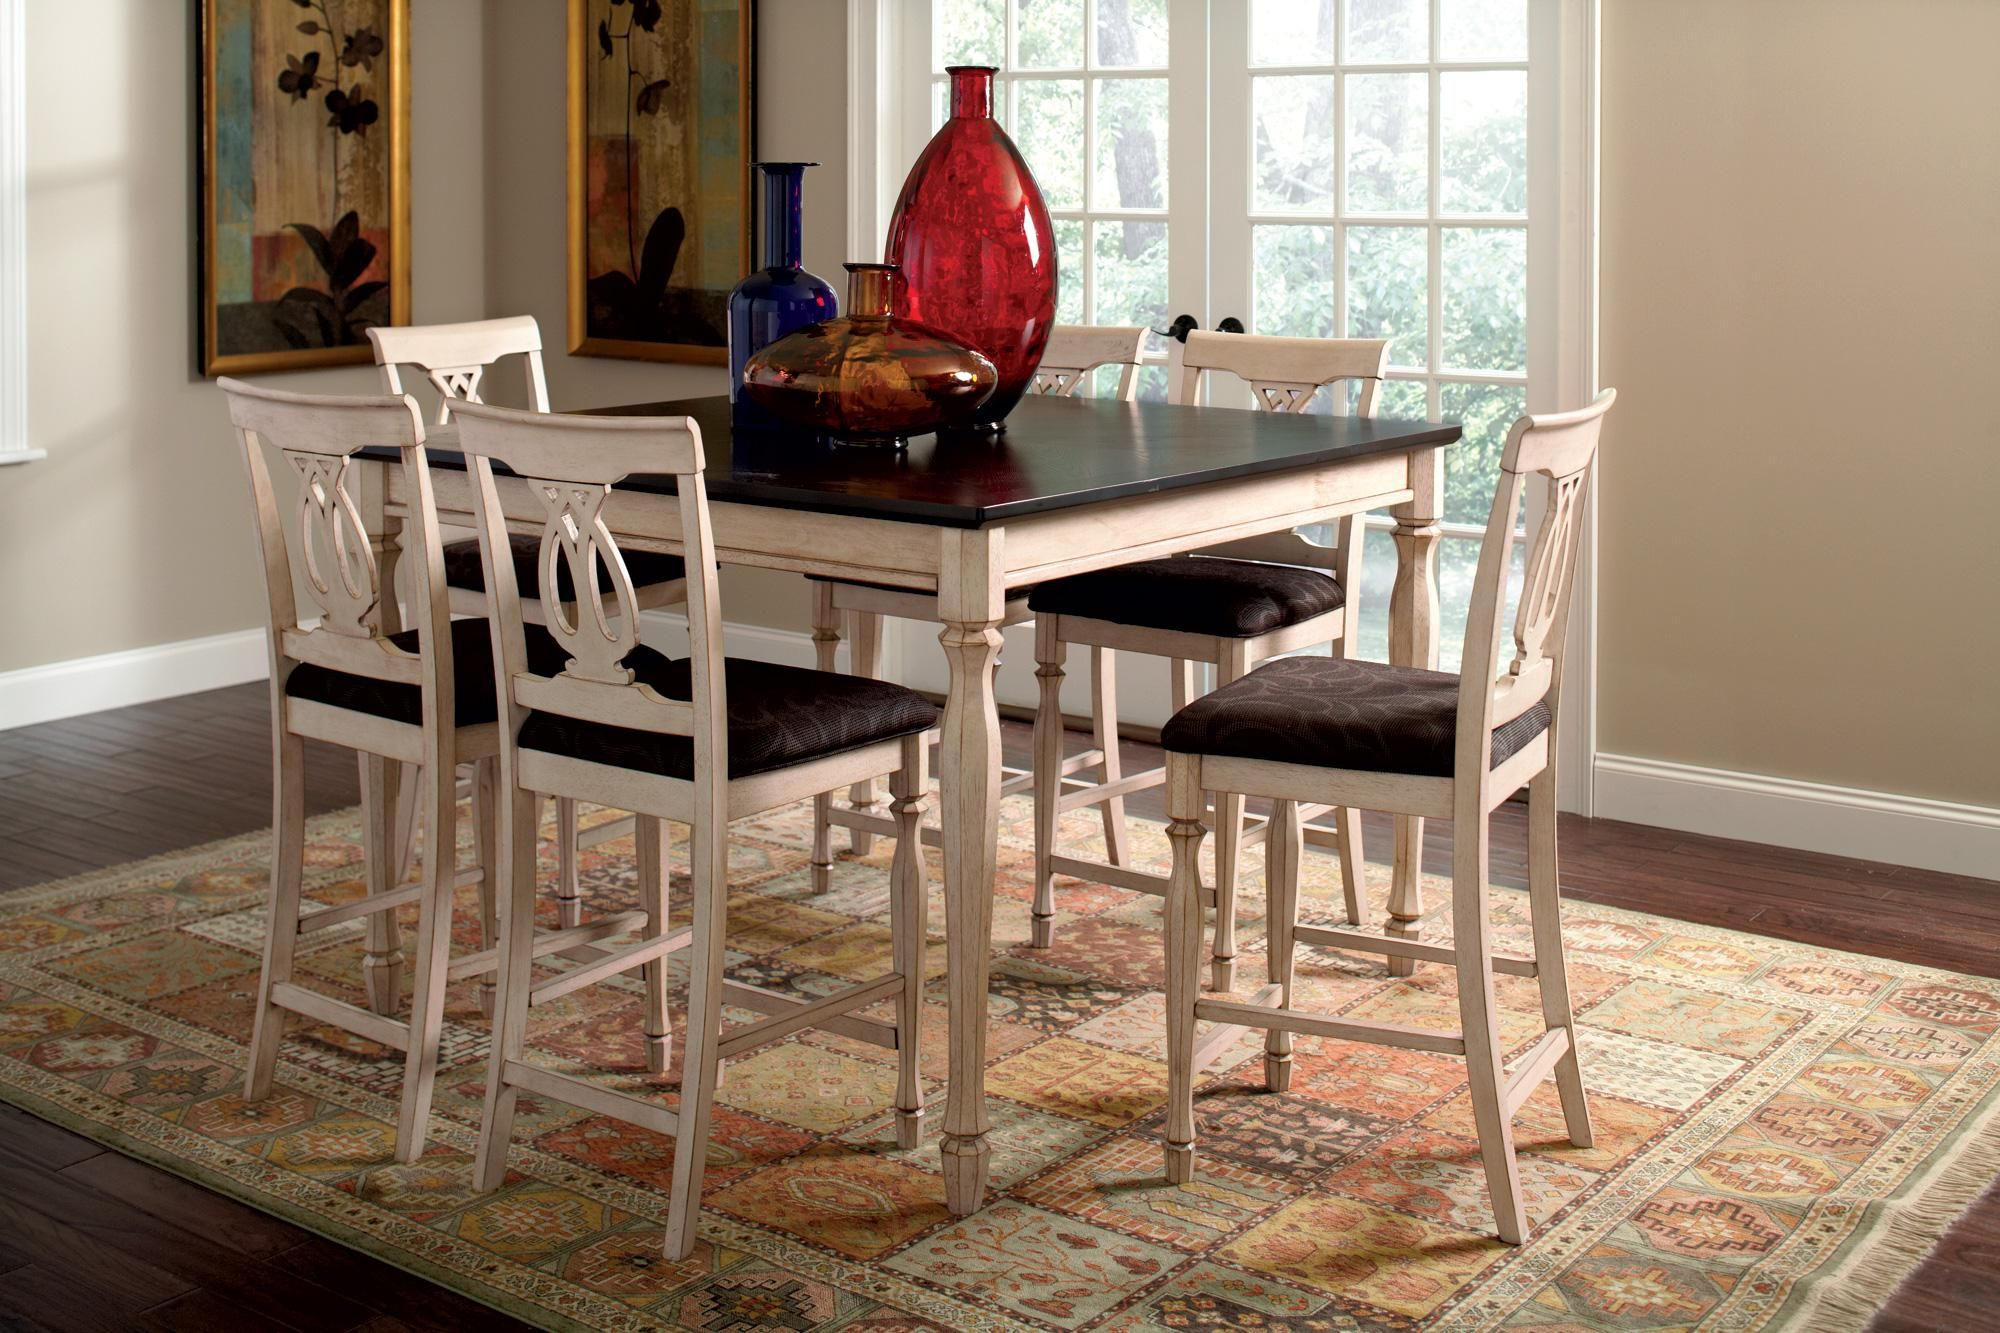 White Table Black Top Dining Room Sets Counter Height Dining